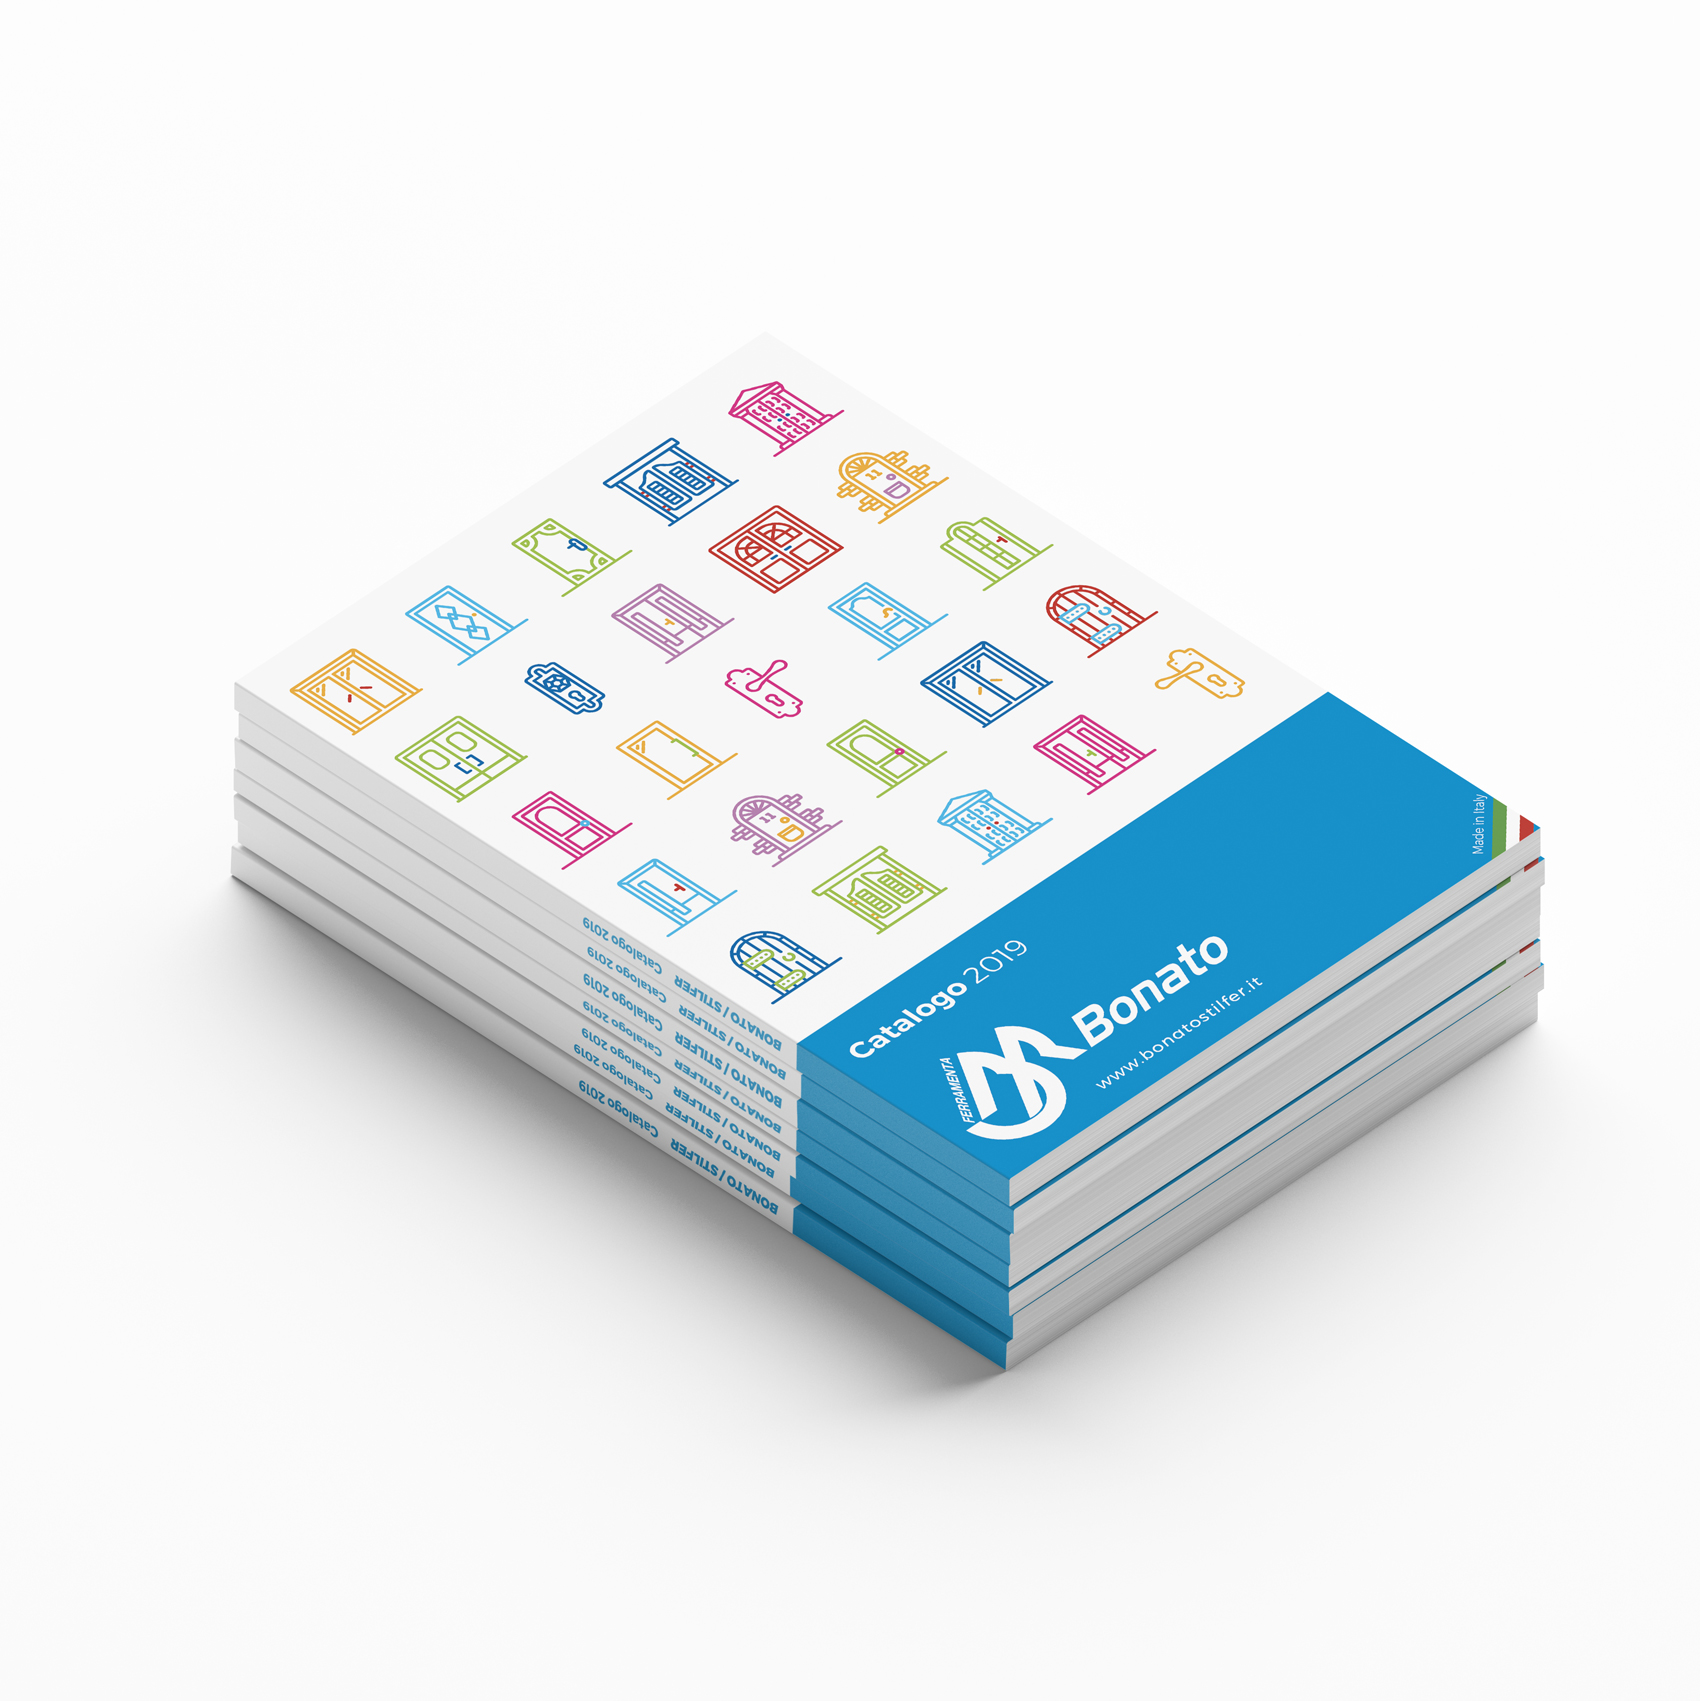 Brochure Catalogo Graphic Design